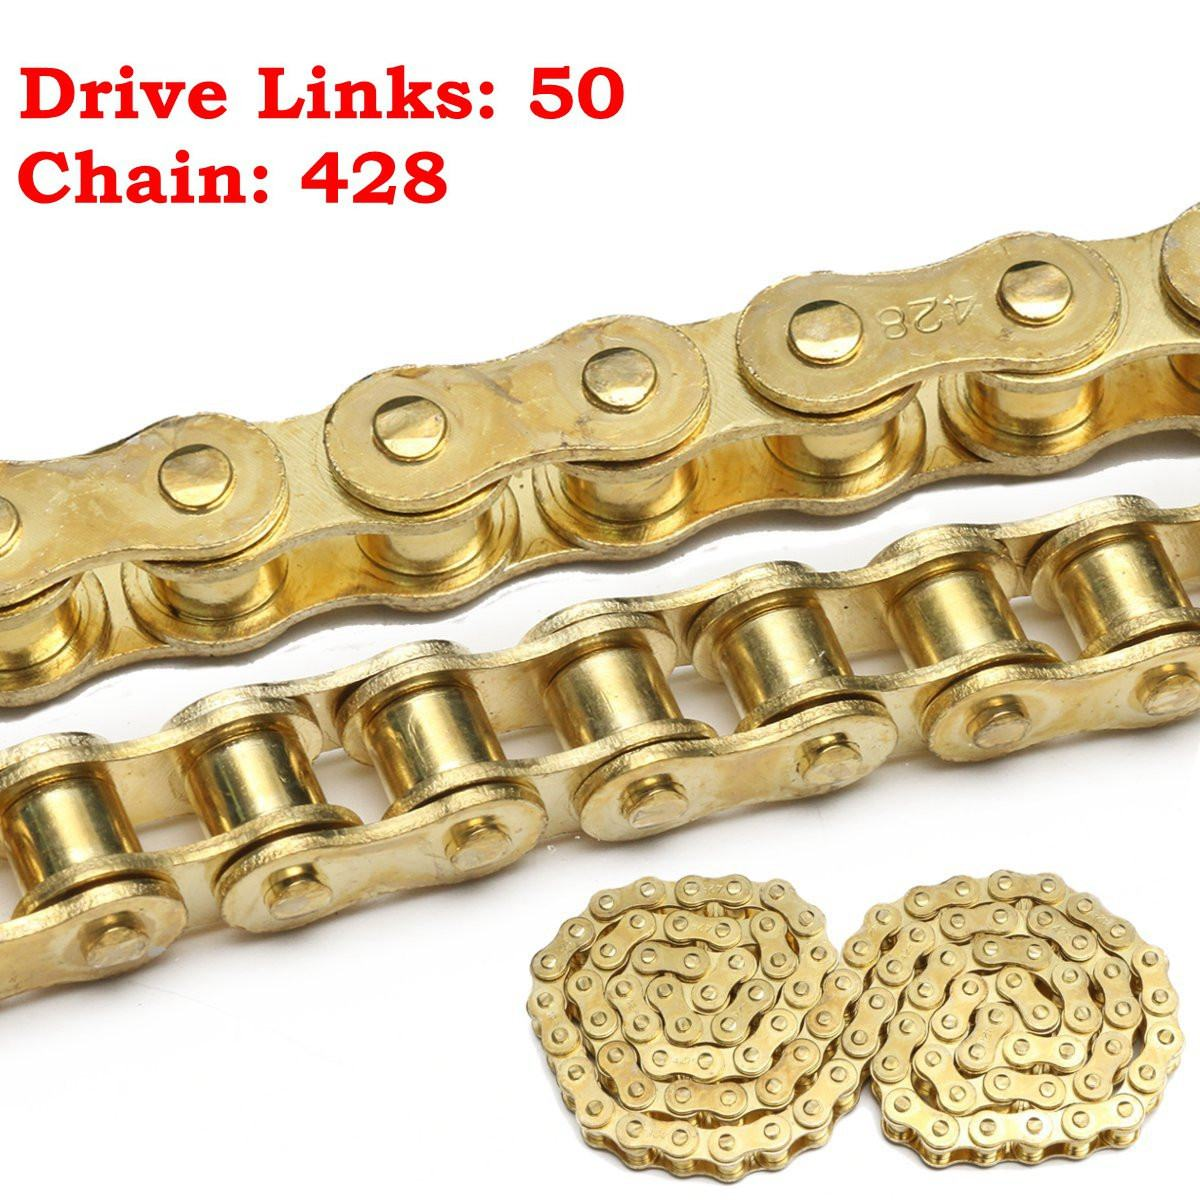 Apprehensive Gold 50 Link 428 Drive Chain For 50cc 110cc 125cc 140cc Pit Dirt Bike Pitbike Quad Atv High Standard In Quality And Hygiene Back To Search Resultsautomobiles & Motorcycles